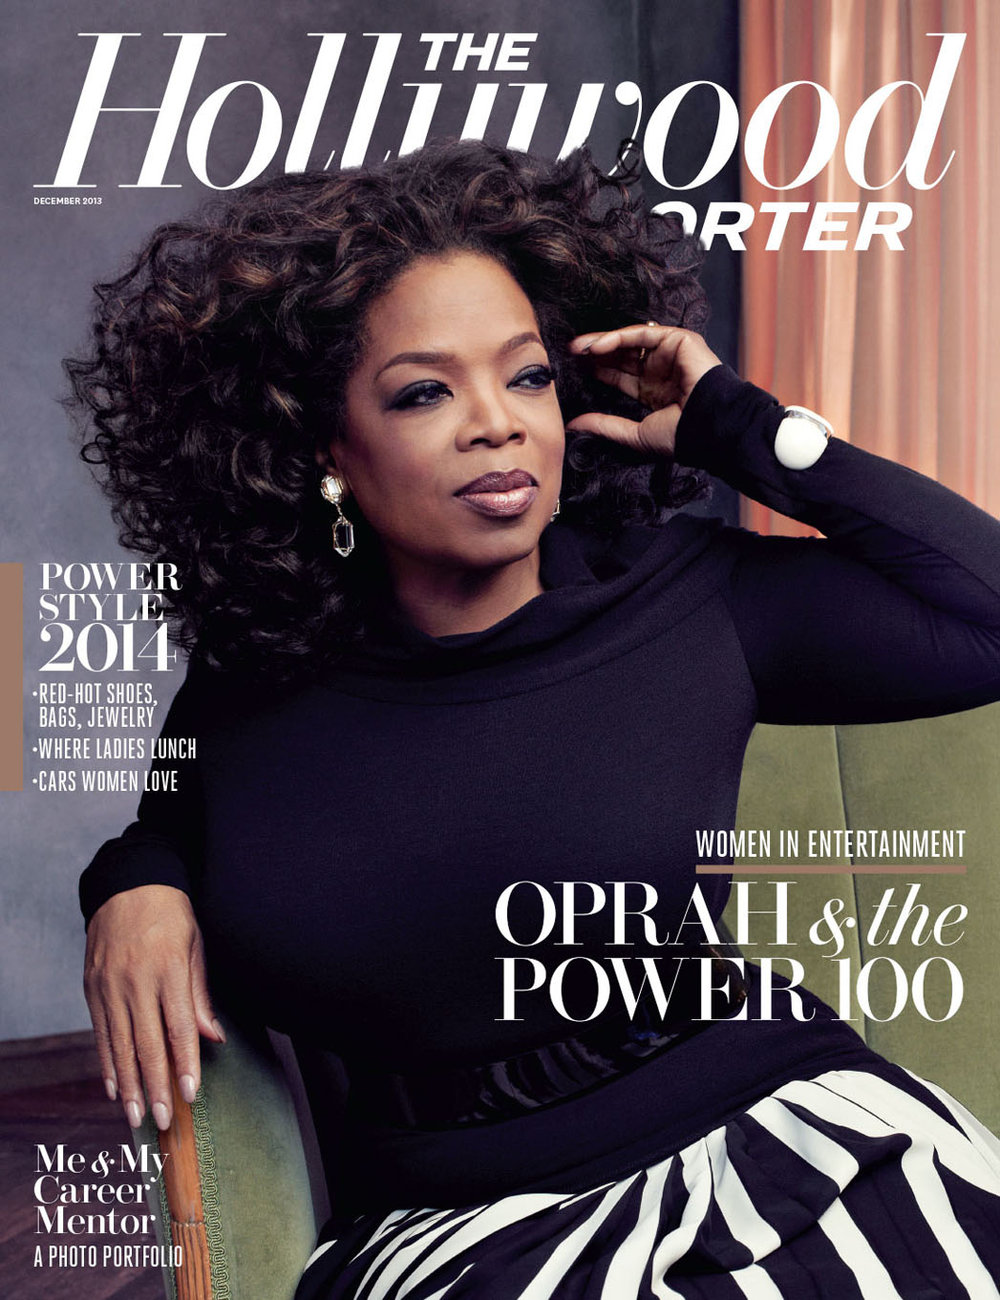 oprah-winfrey-by-joe-pugliese-for-the-hollywood-reporter-december-2013.jpg